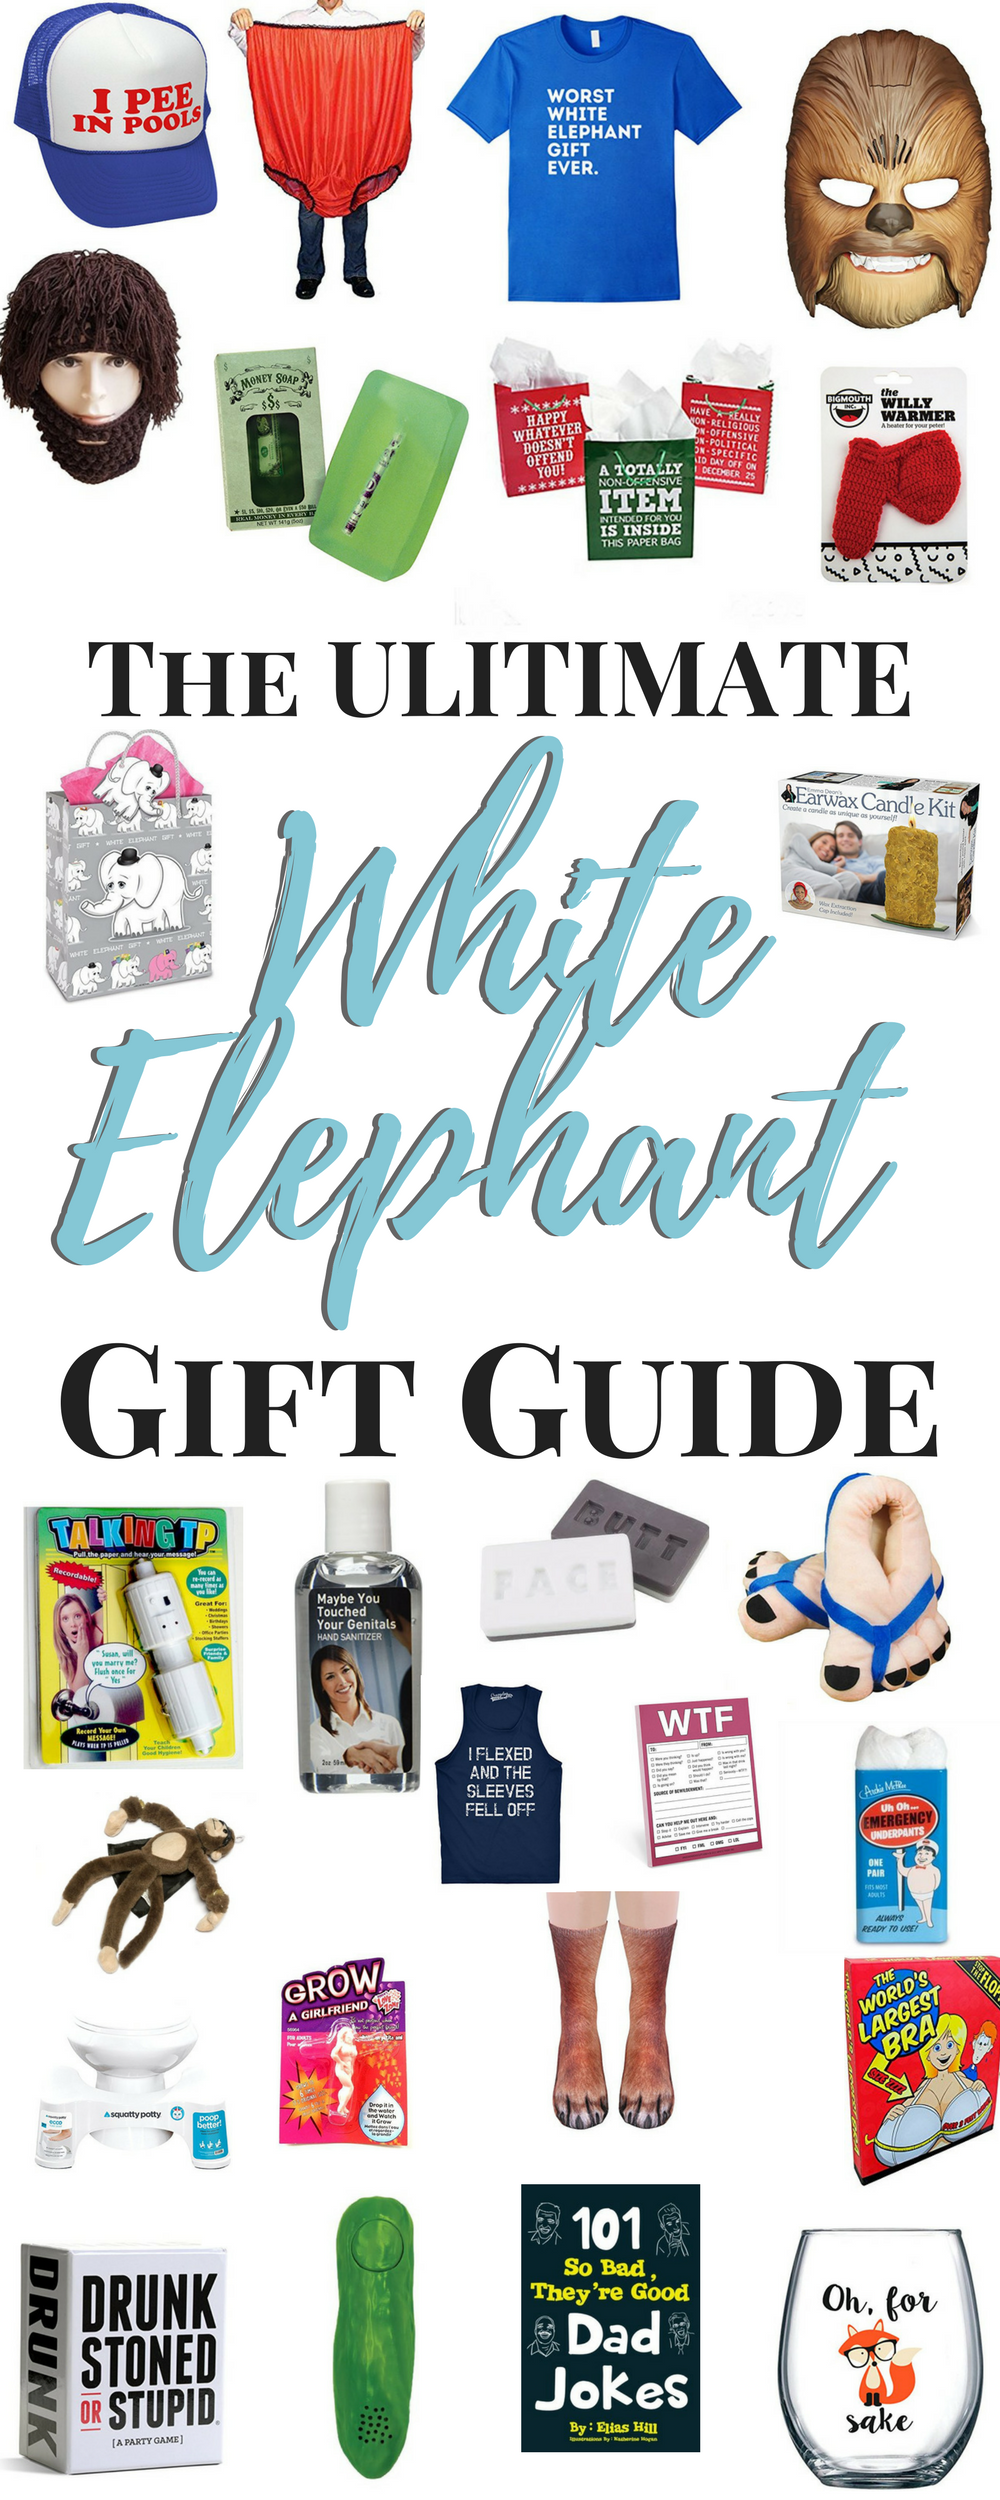 The Ultimate White Elephant Gift Guide. #whiteelephant #giftideas Looking for an awesome White Elephant Gift Ideas for your White Elephant Exchange?  Here are some great White Elephant Gift Exchange Ideas FUNNY for your next White Elephant Gift Party.